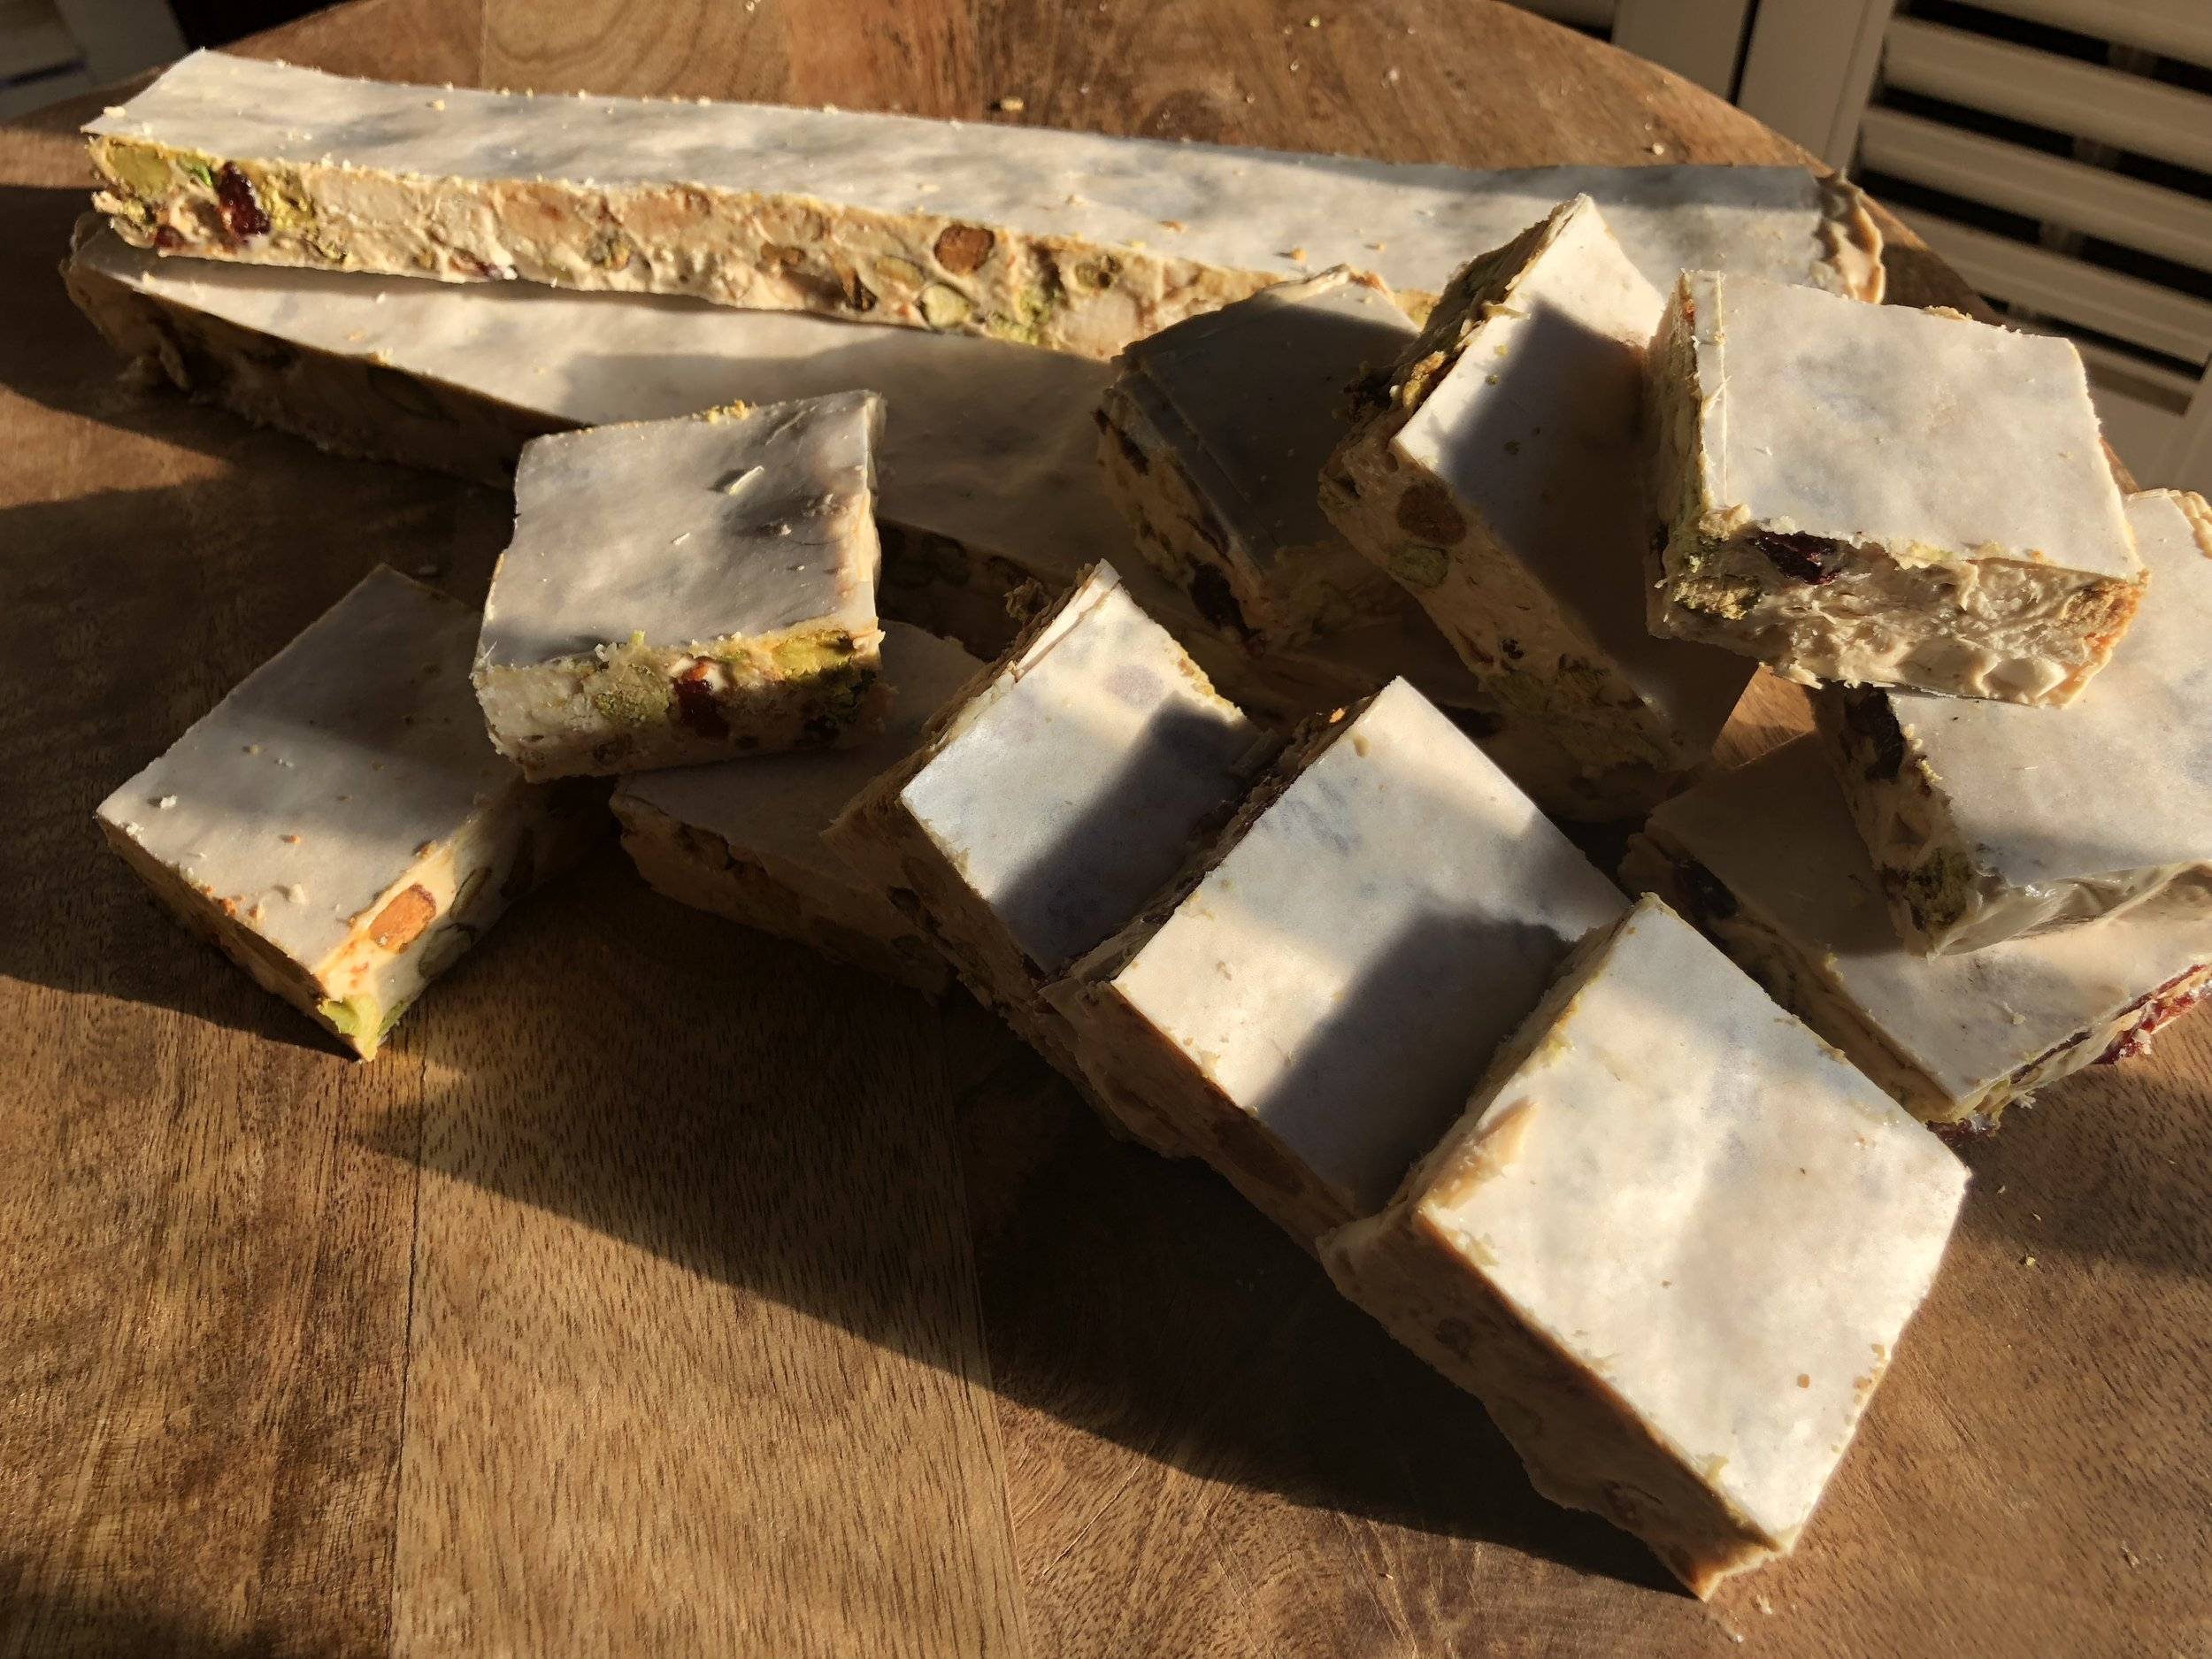 Cut the torrone into any size or shape you like.